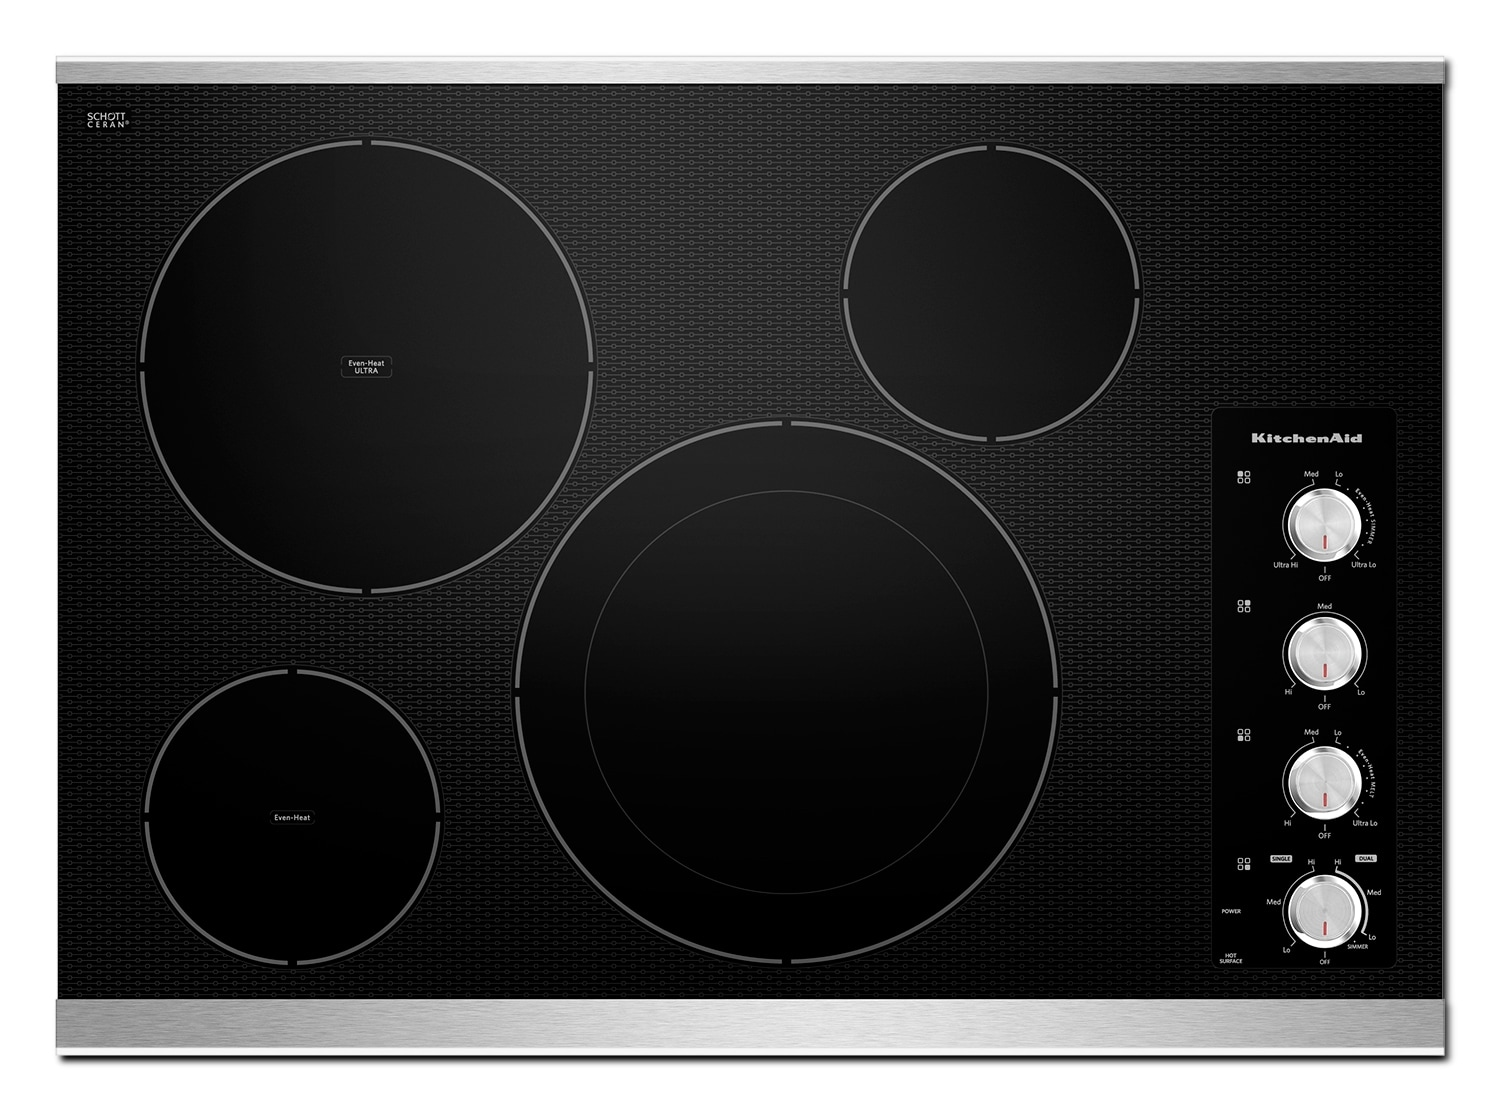 Cooking Products - KitchenAid Electric Cooktop KECC604BSS